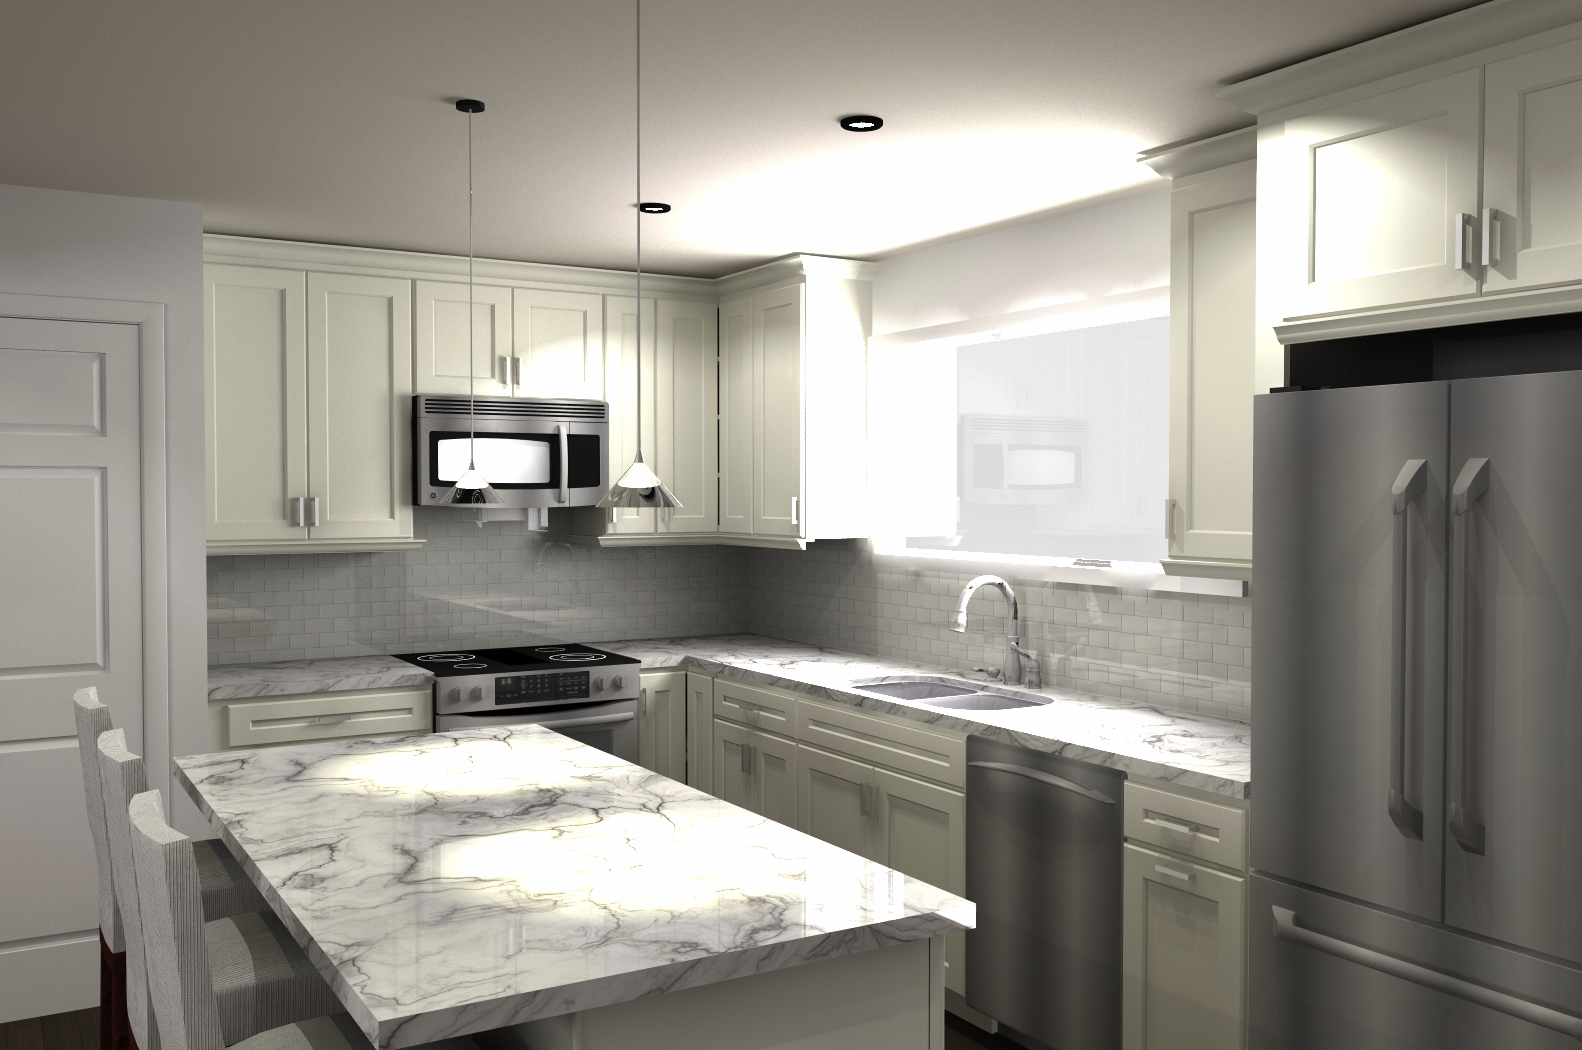 Chicago #kitchen #remodeling rendering using 20/20 software ...